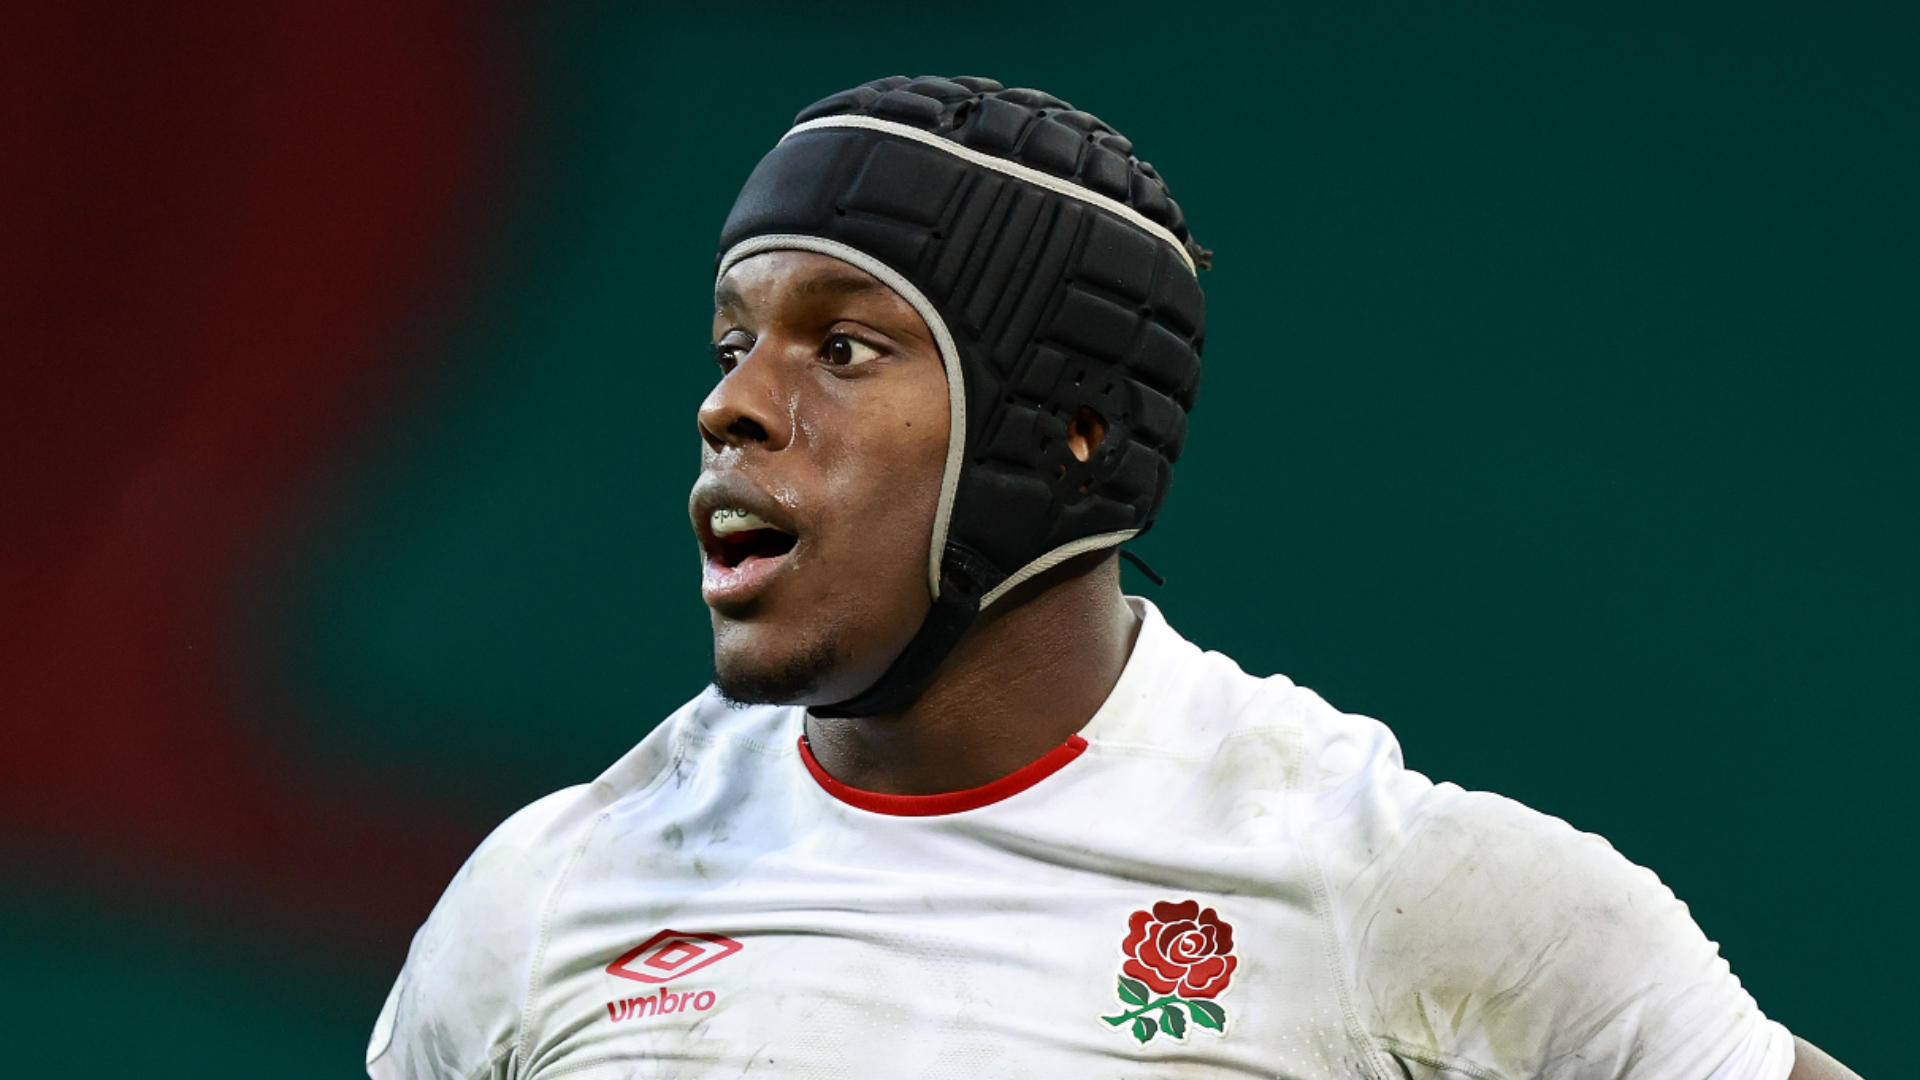 Maro Itoje received backing from Eddie Jones after England's loss to Wales, while Ellis Genge has received death threats on social media.